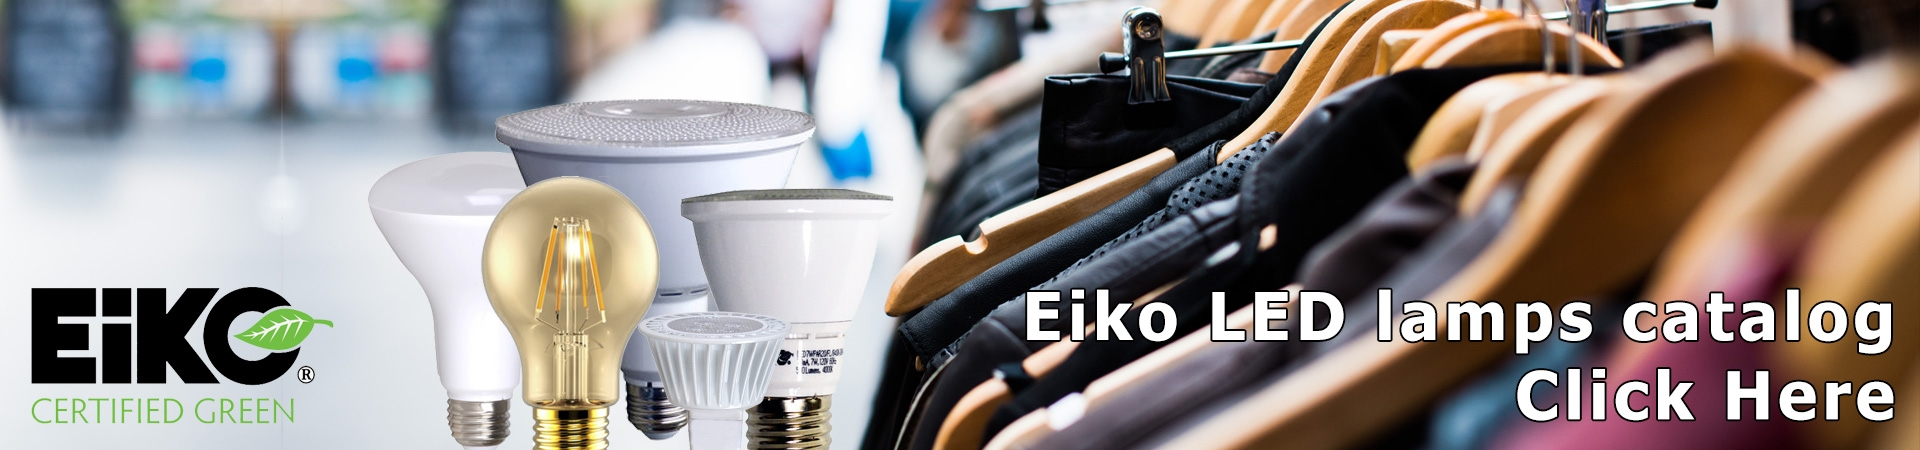 Click here for Eiko's LED lamps catalog